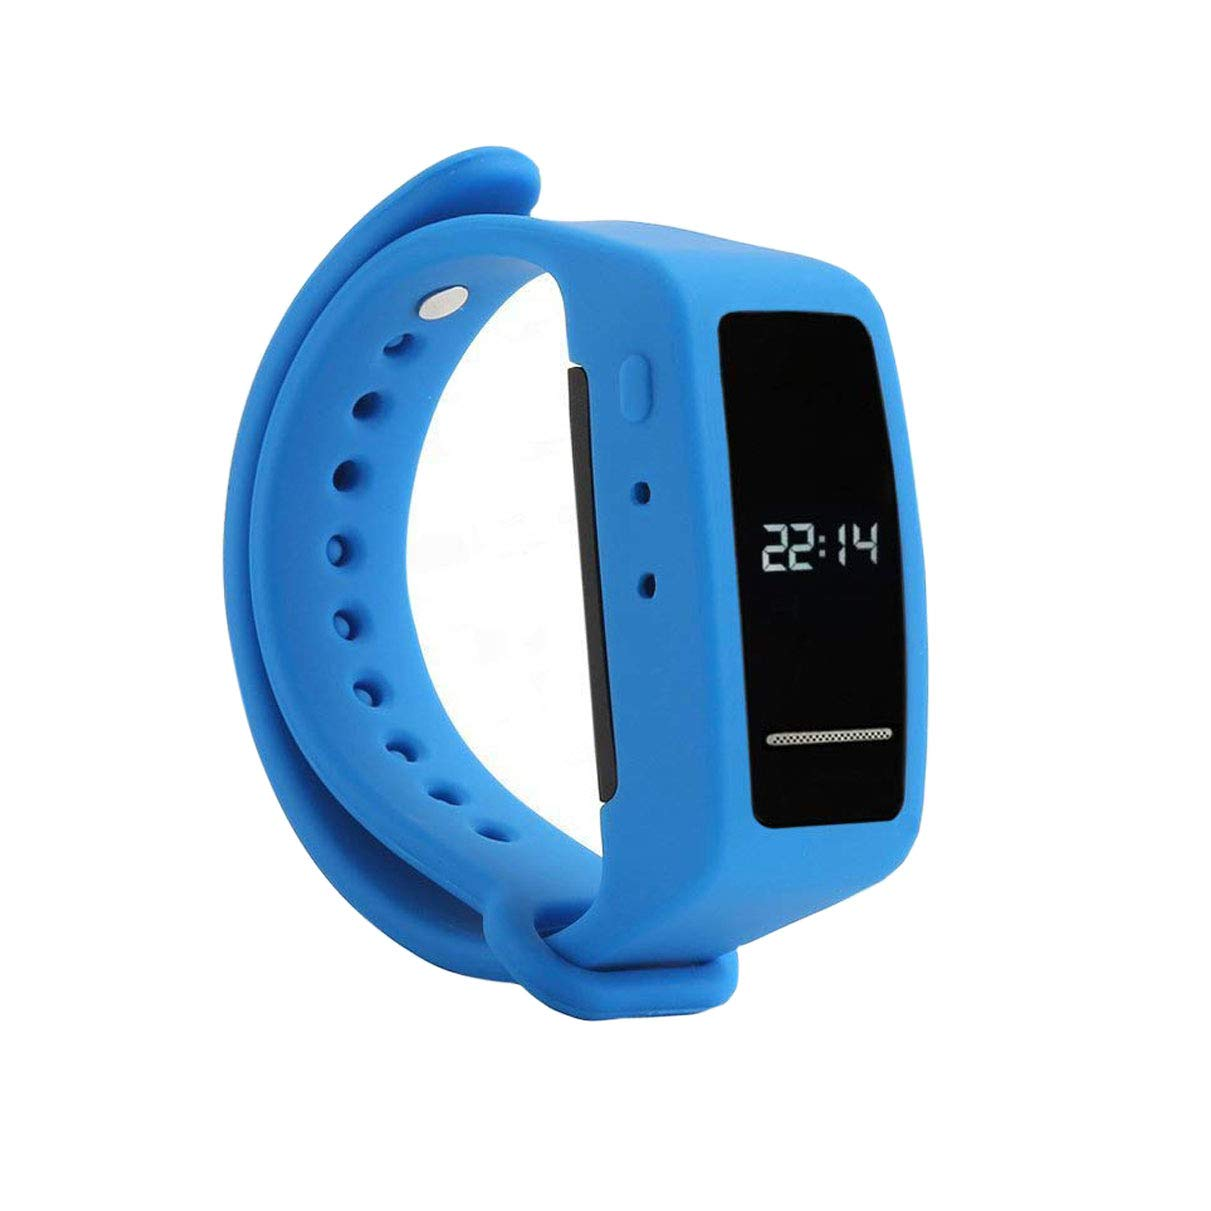 8GB Digital Voice Recorder Wristband Audio Recorder Wrist Watch USB Rechargeable Sound Recording Bracelet Dictaphone for Lecture Meeting Interview Classes & Playback by Built-in Specker(Blue)